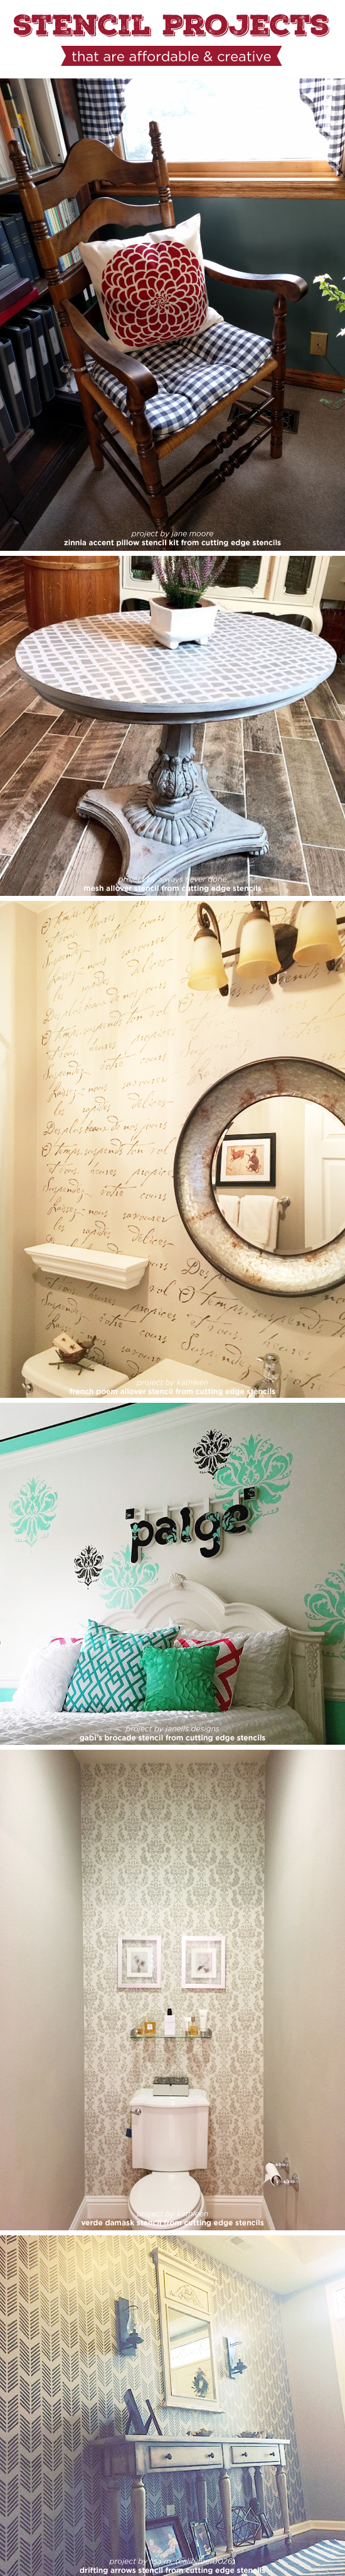 Stencil Projects That Are Affordable and Creative on